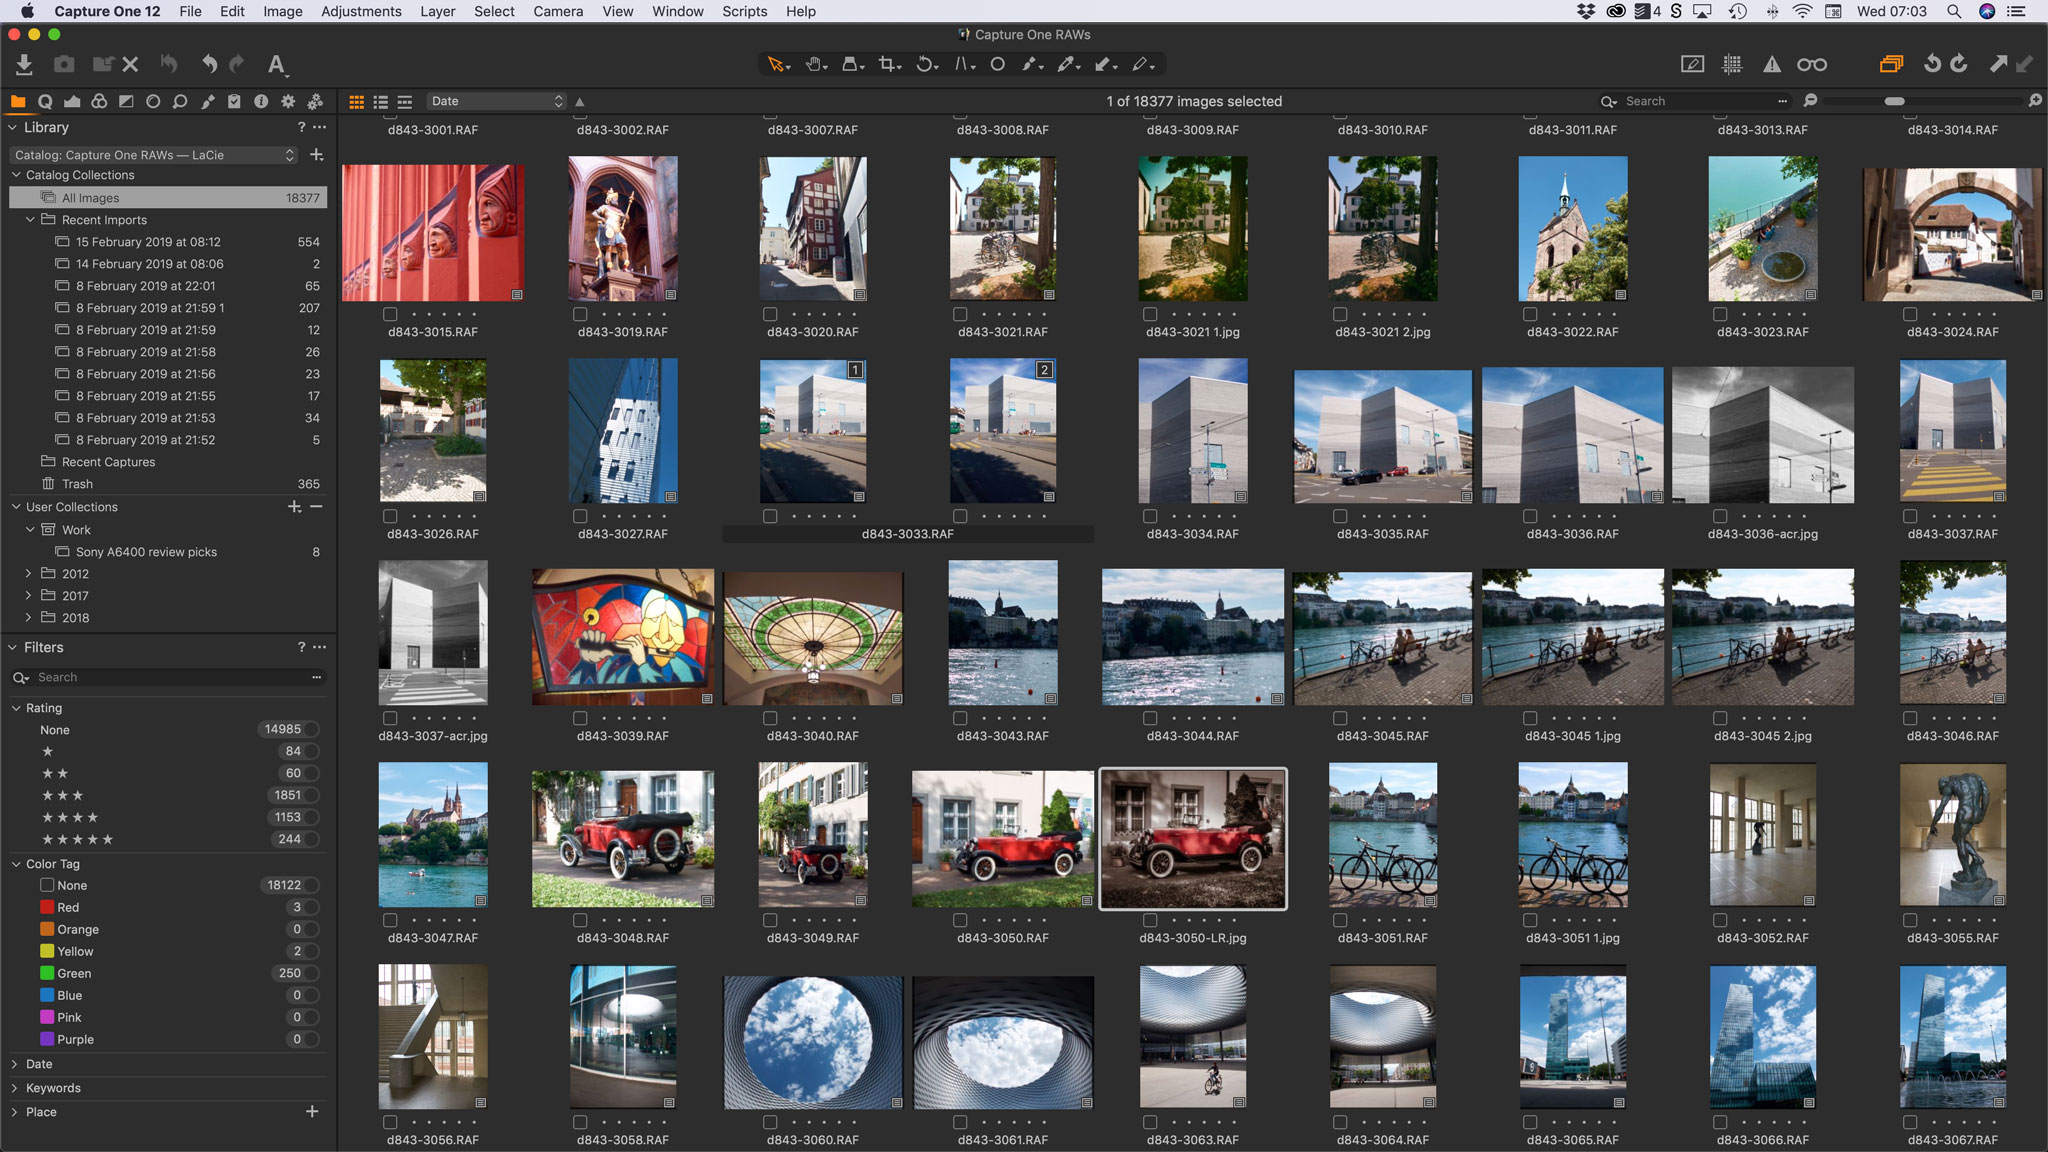 Capture One review